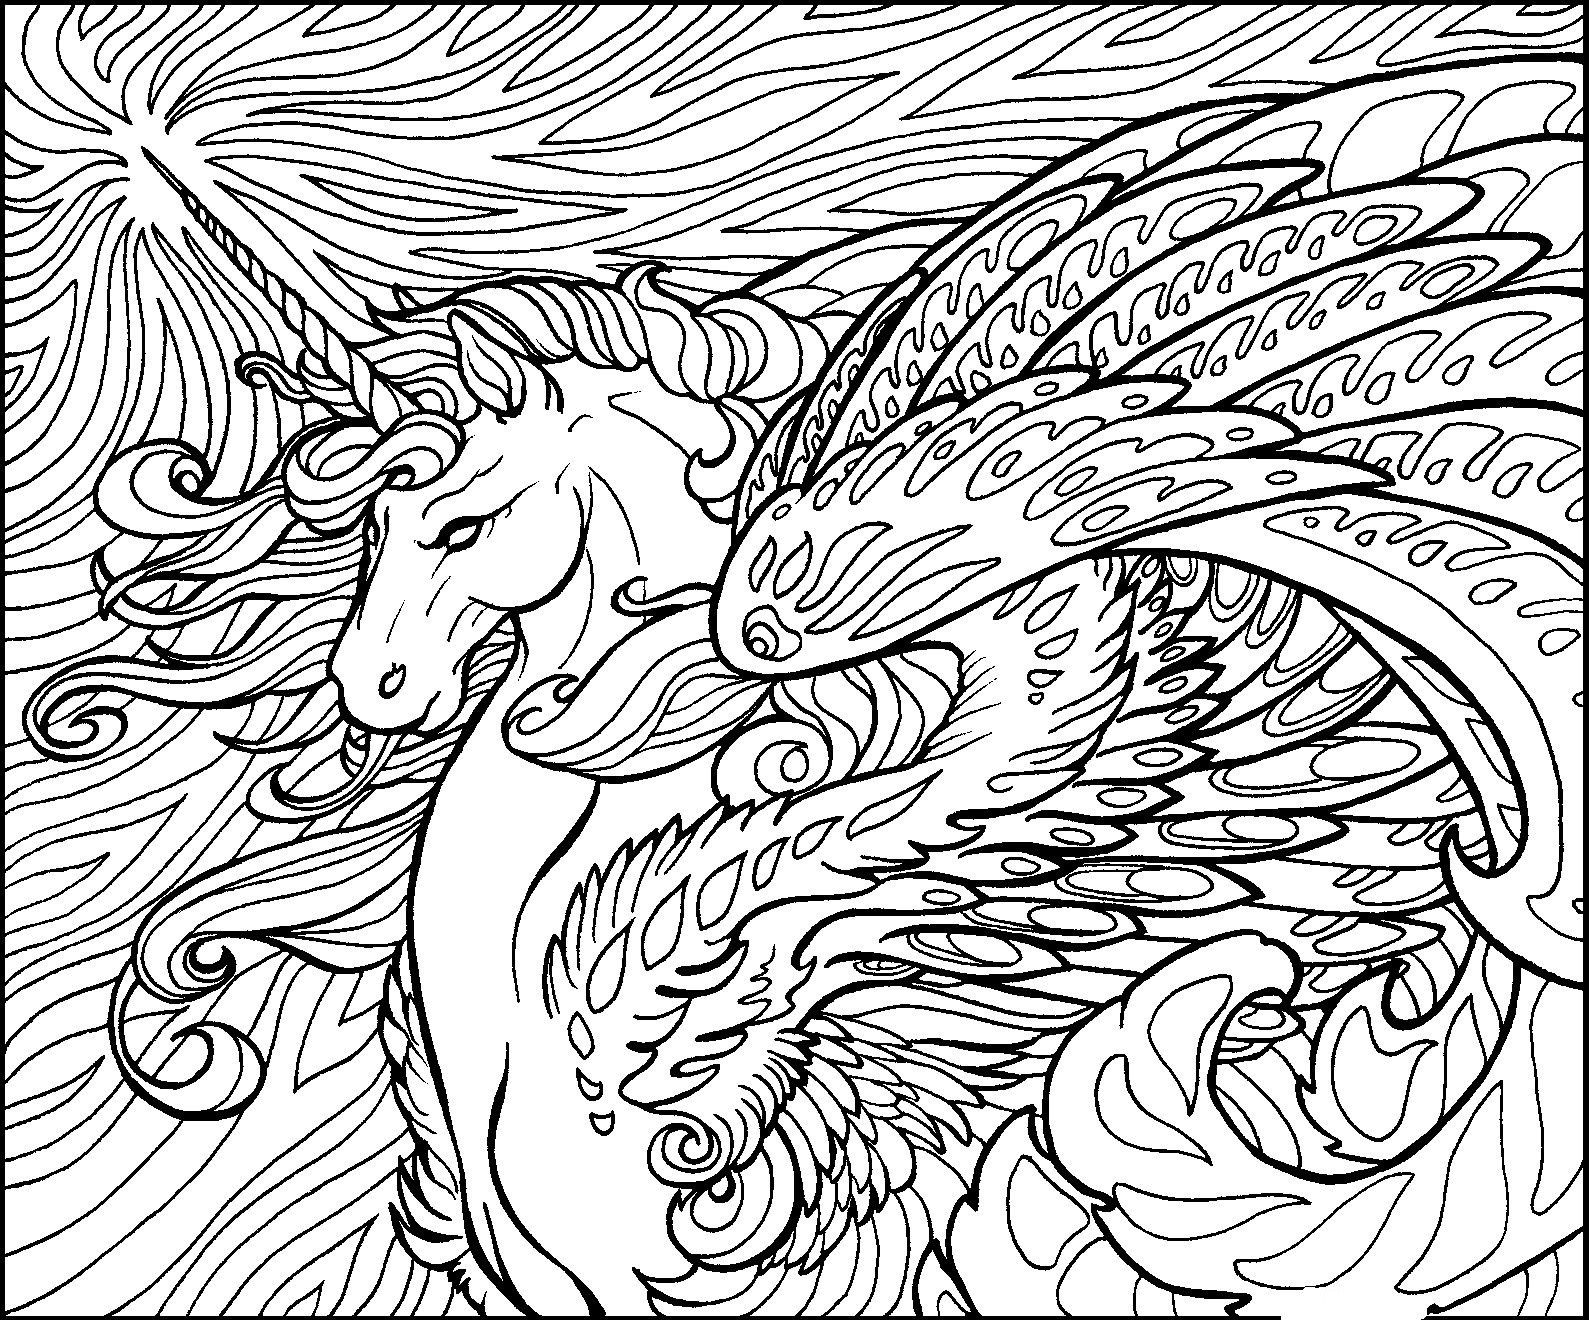 Best ideas about Detailed Coloring Pages For Adults . Save or Pin Detailed Coloring Pages For Adults Coloring Home Now.